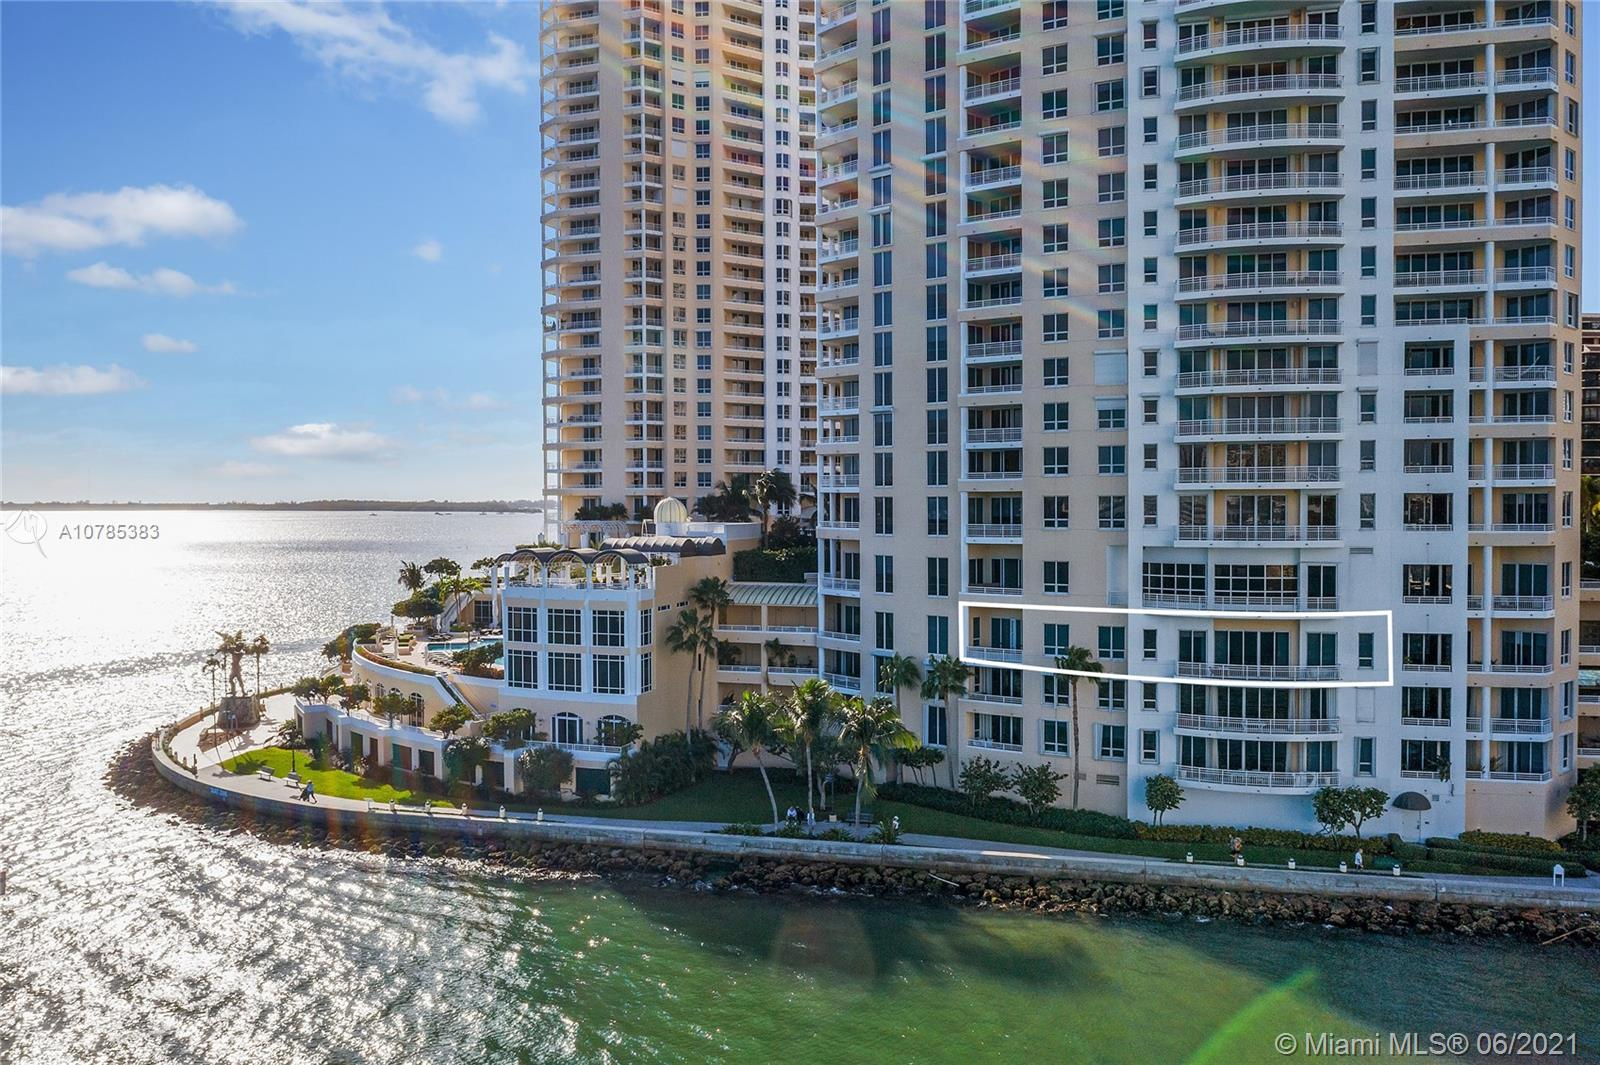 THIS WATERFRONT UNIT FEATURES 4 BEDROOMS & 4½ BATHS. Over 3000 sq. ft of living. Own one of the few units that are COVID safe. This remodeled apartment in prestigious Tequesta 3 has access directly from the garage to your condo unit. Park your car in the same floor as your unit and walk directly into your home. No need to enter through lobby or take elevators. This unit is like living in a house, but with all the amenities of a luxury building. The condo is located so close to the water that it has the feeling of looking out from a yacht. UNIT COMES WITH 4 PARKING SPACES, 2 STORAGE UNITS AND 3 CABANAS.. NOTE: The fourth bedroom does not have a window: has closet, in-suite bathroom & separate entrance for privacy. The 4th room can serve as a guest bedroom, den, office or maid's quarter.